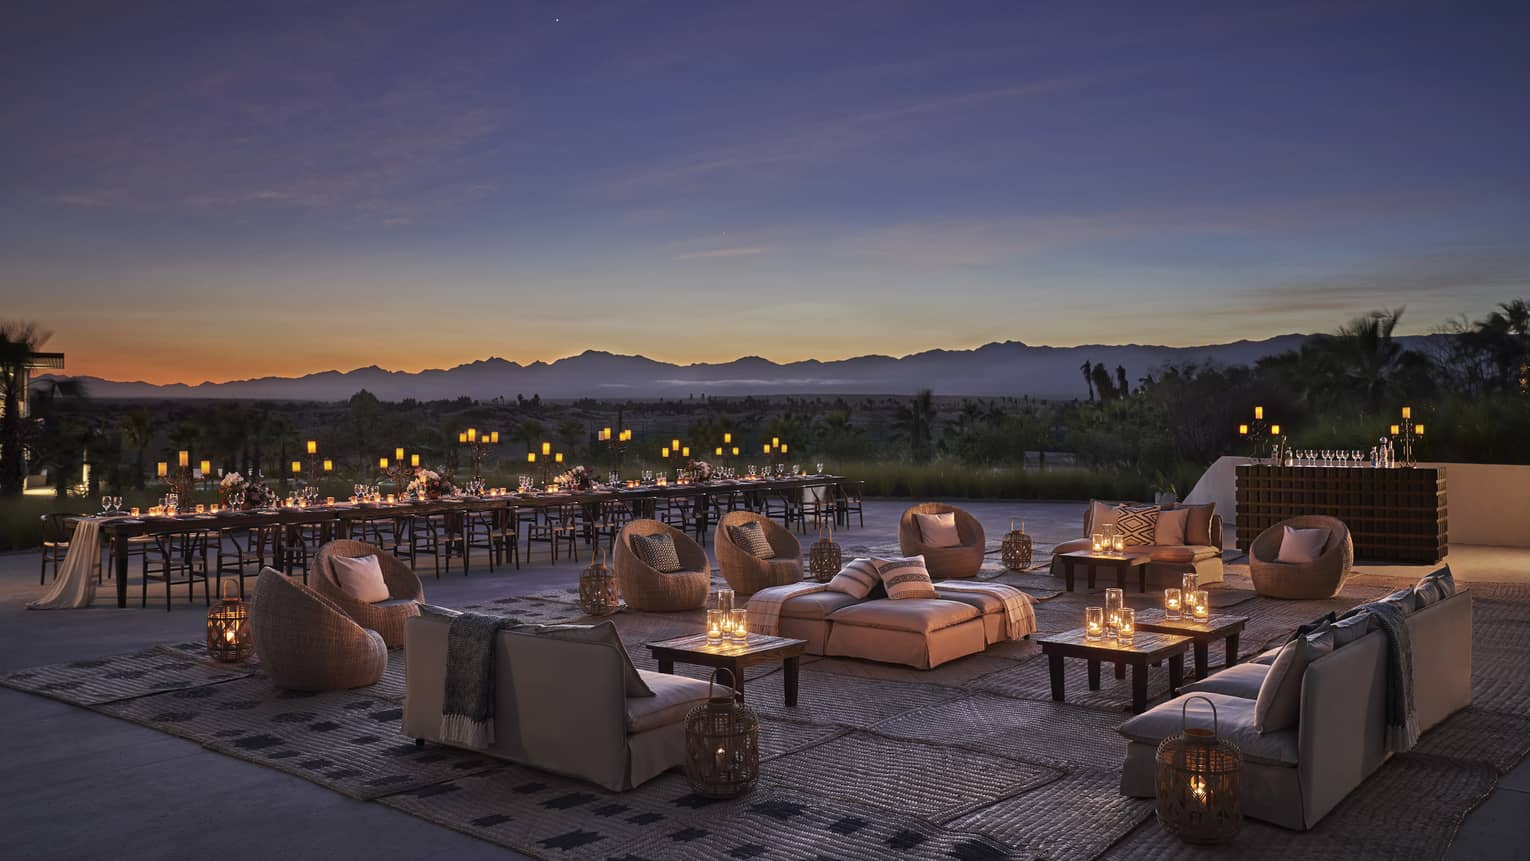 The sky is dark at dusk while the terrace is set with white couches and low tables decorated with candles and a long banquet style table set off to the side